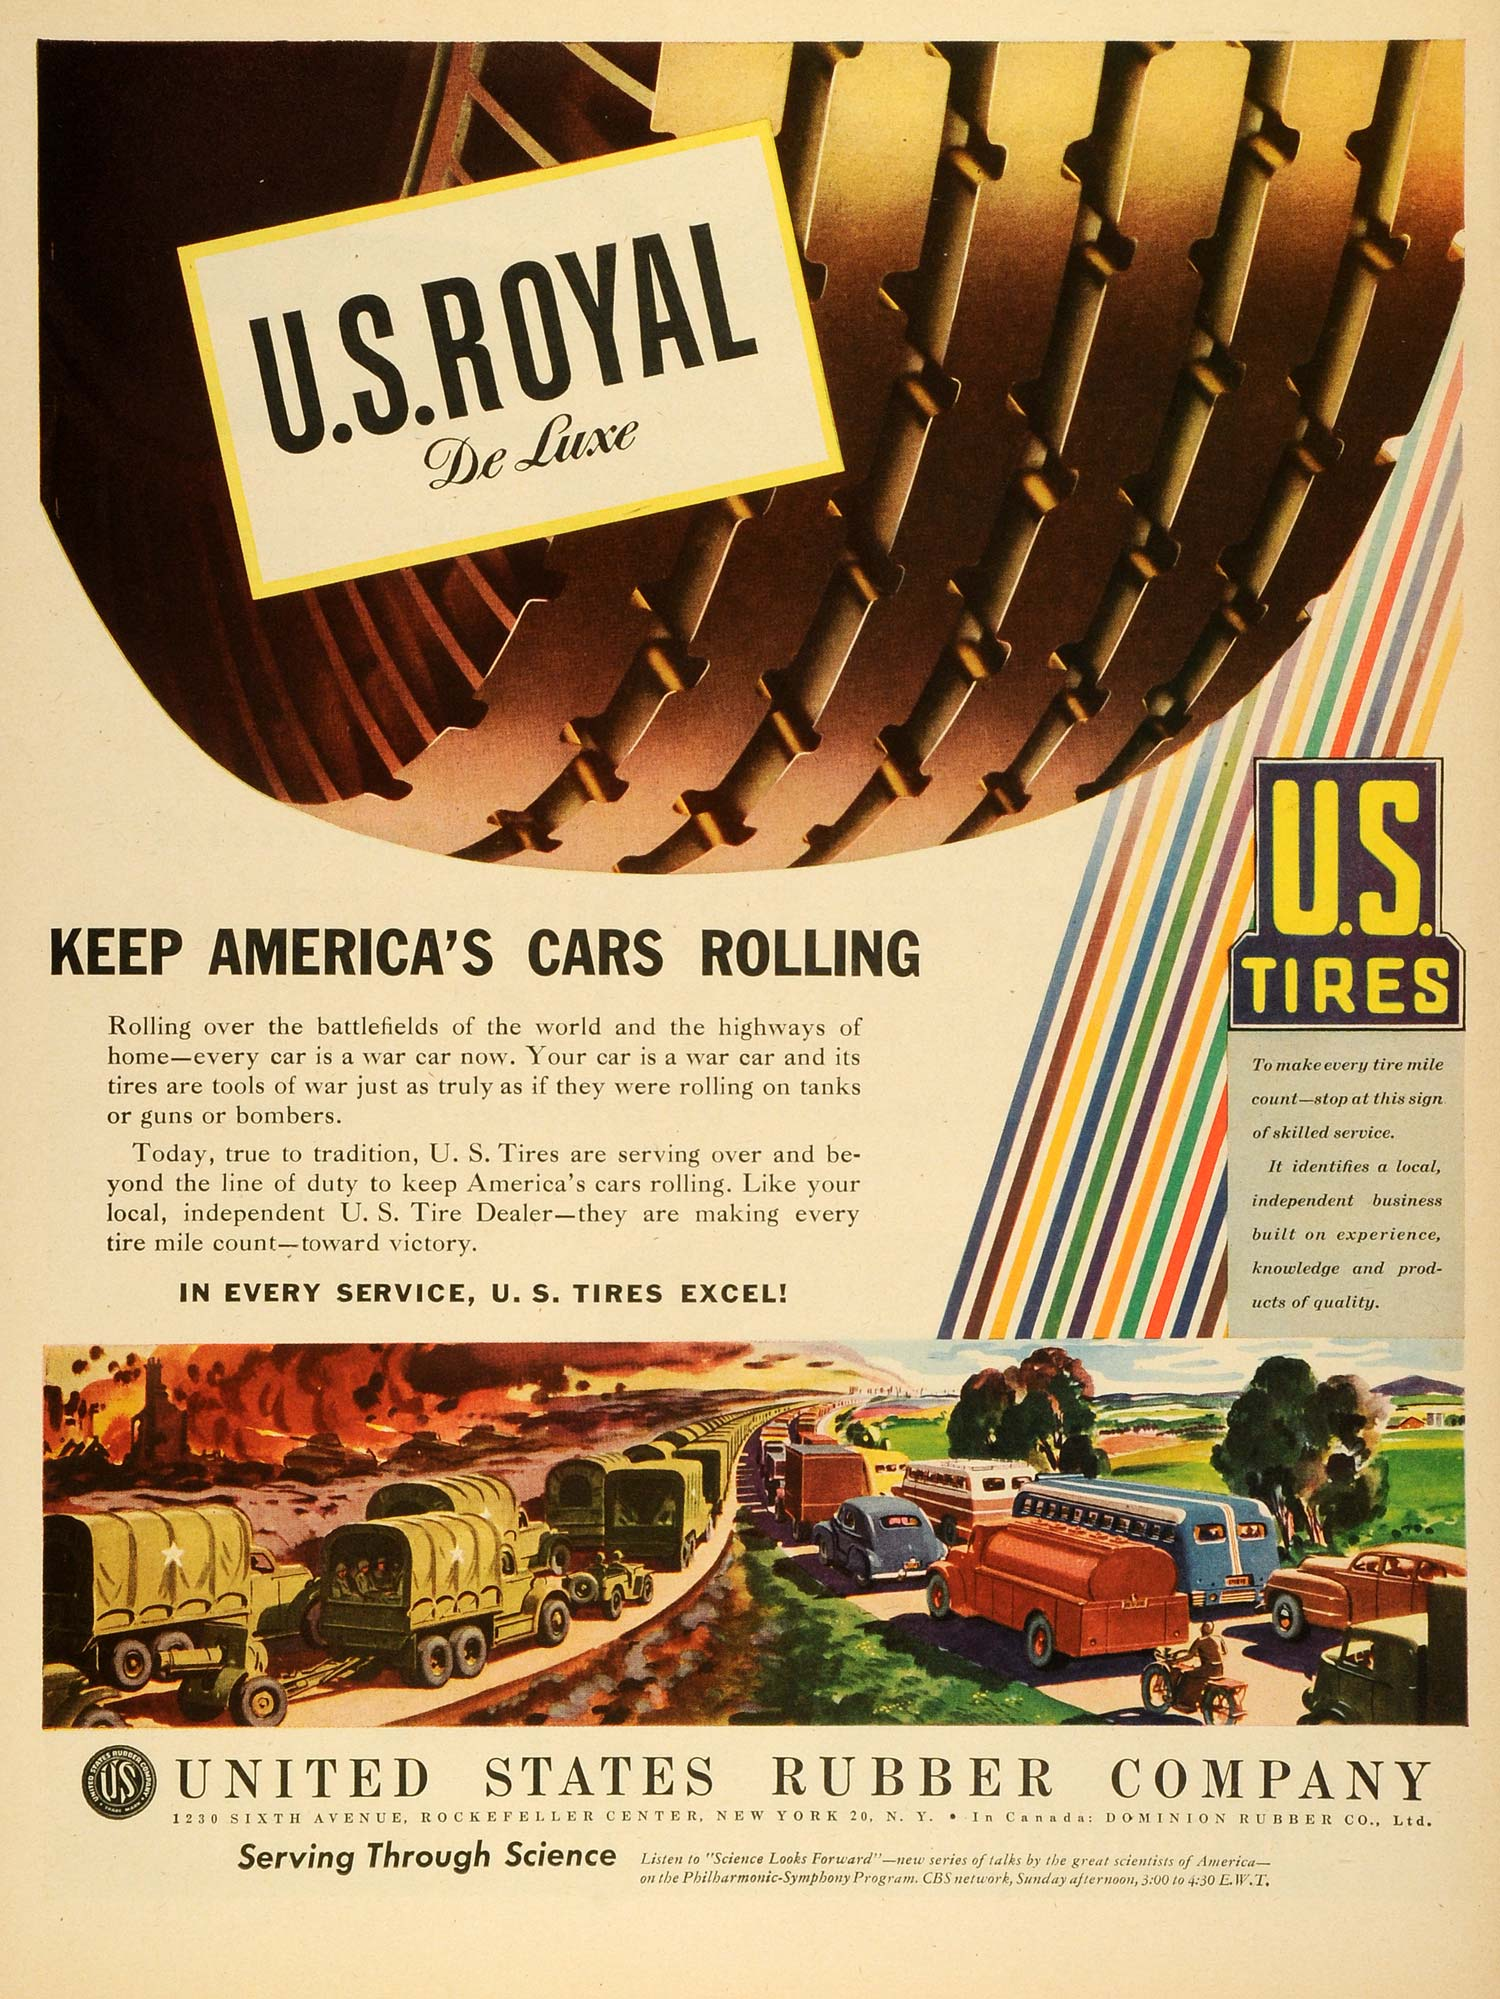 1945 Ad United States Rubber Co Logo US Royal De Luxe Tires Motor Vehicle LF4